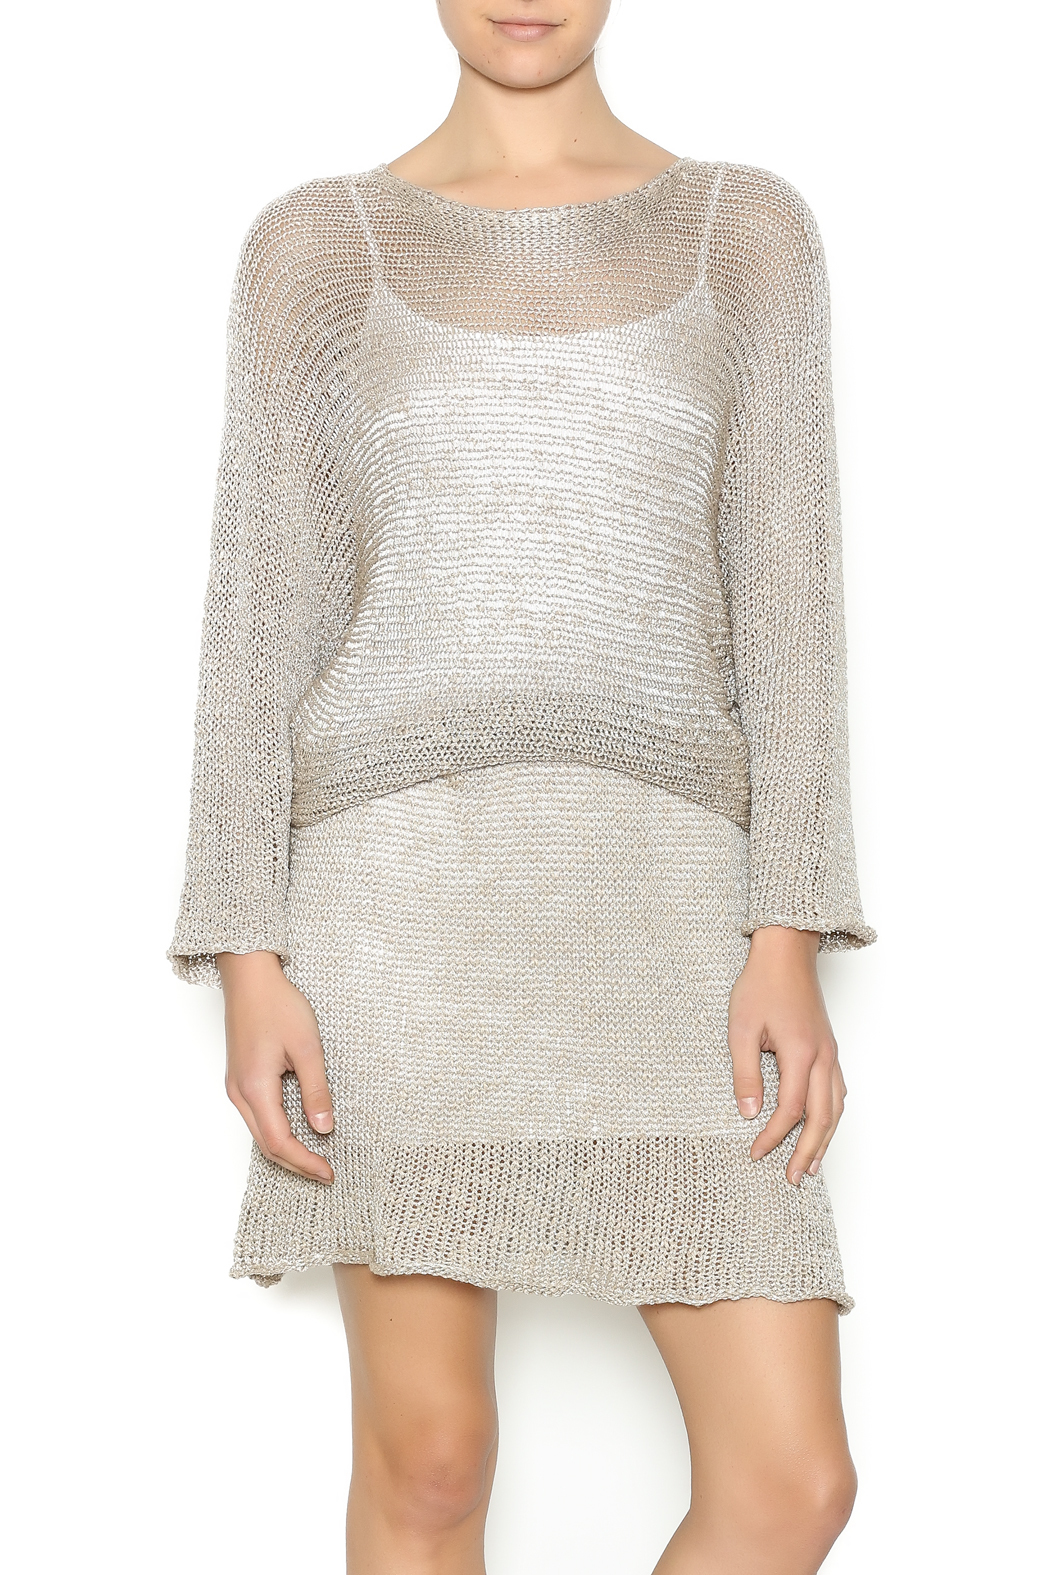 DC KNITS Champagne Sheen Dress - Main Image